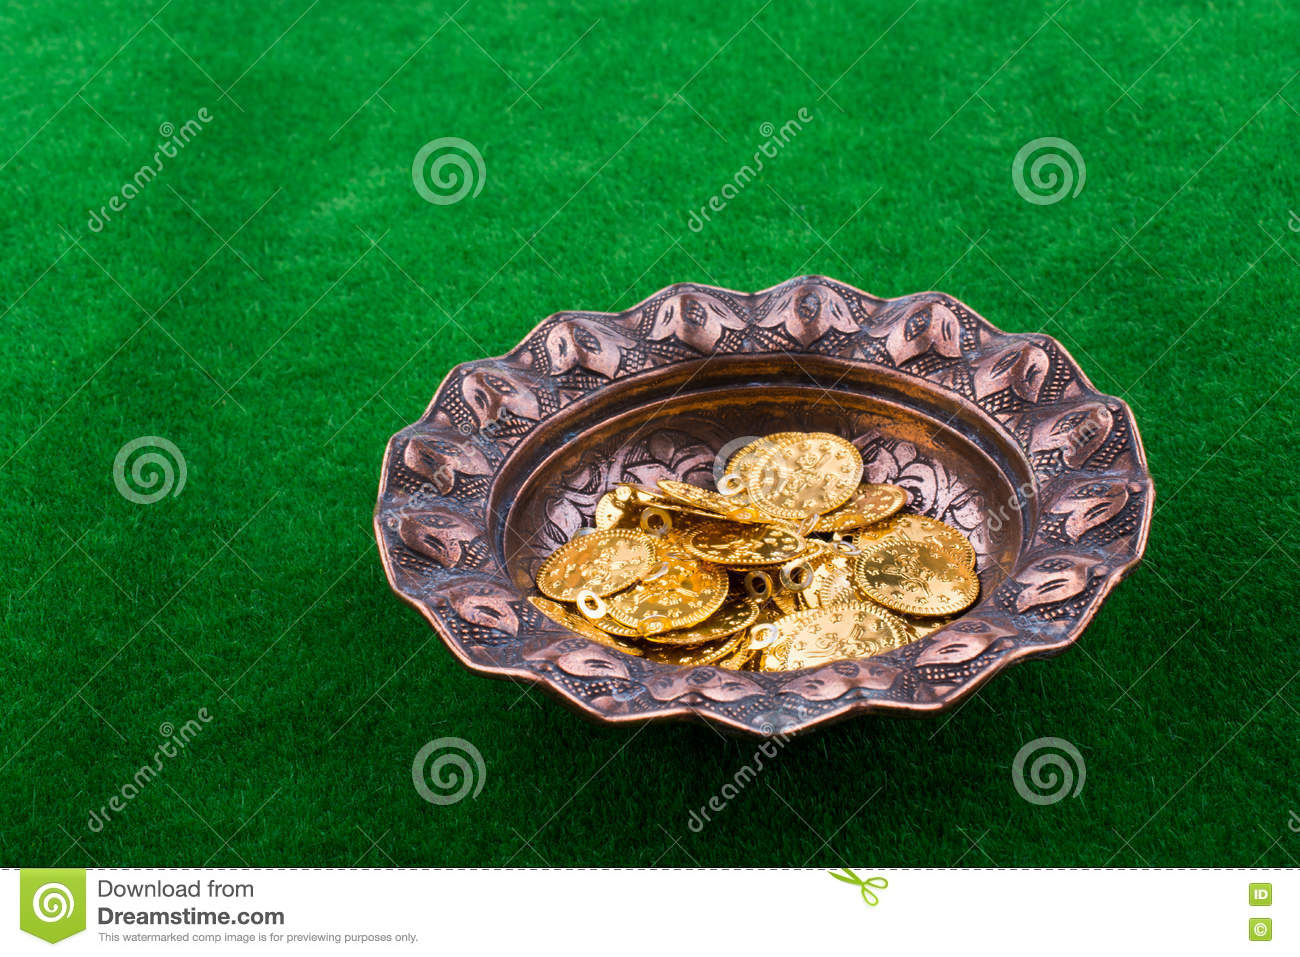 Fake gold coins in a metal plate